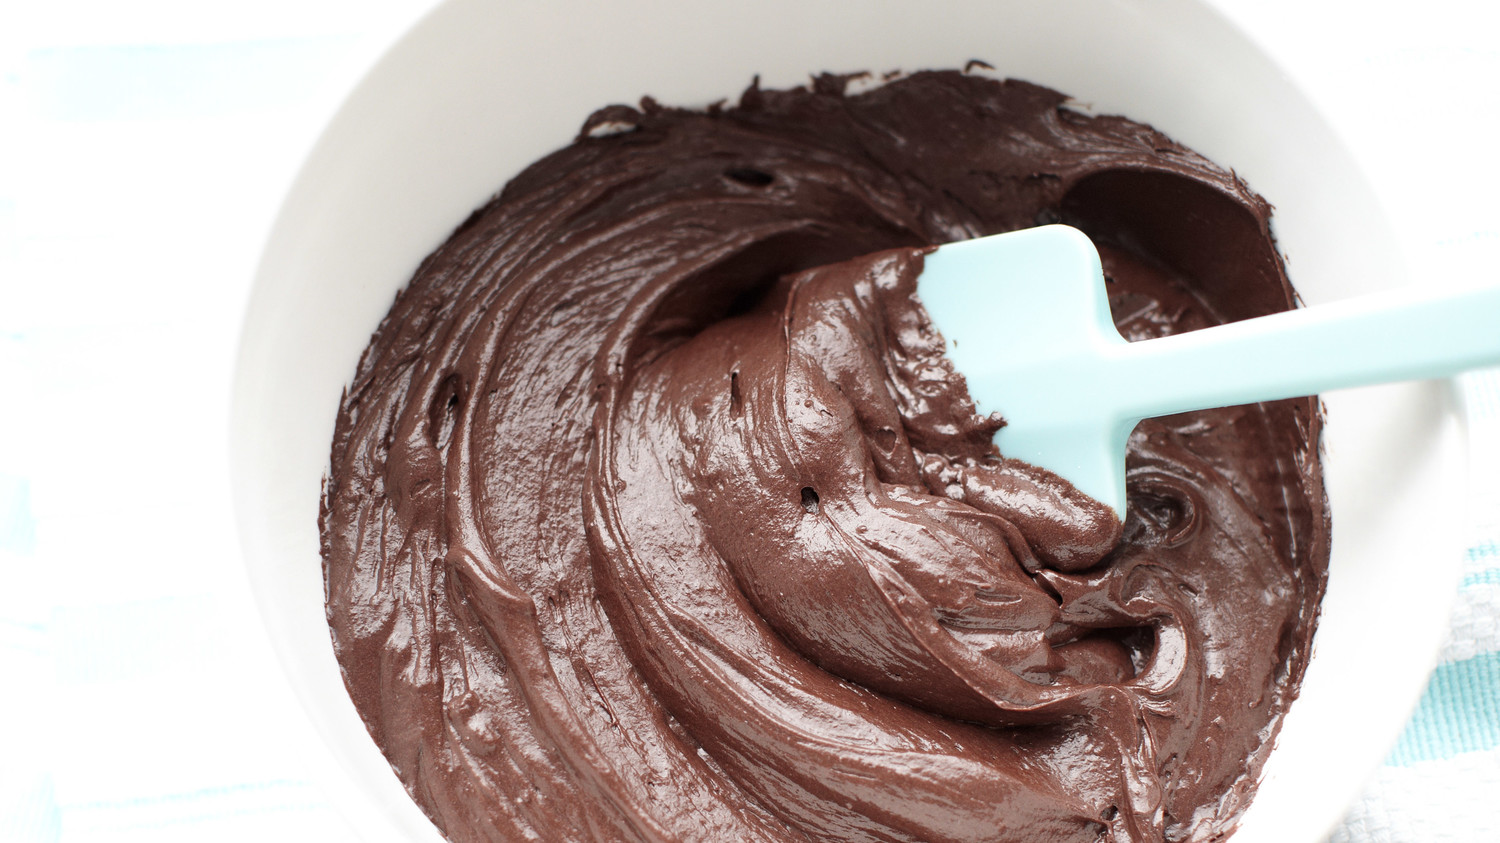 Chocolate fudge frosting with condensed milk